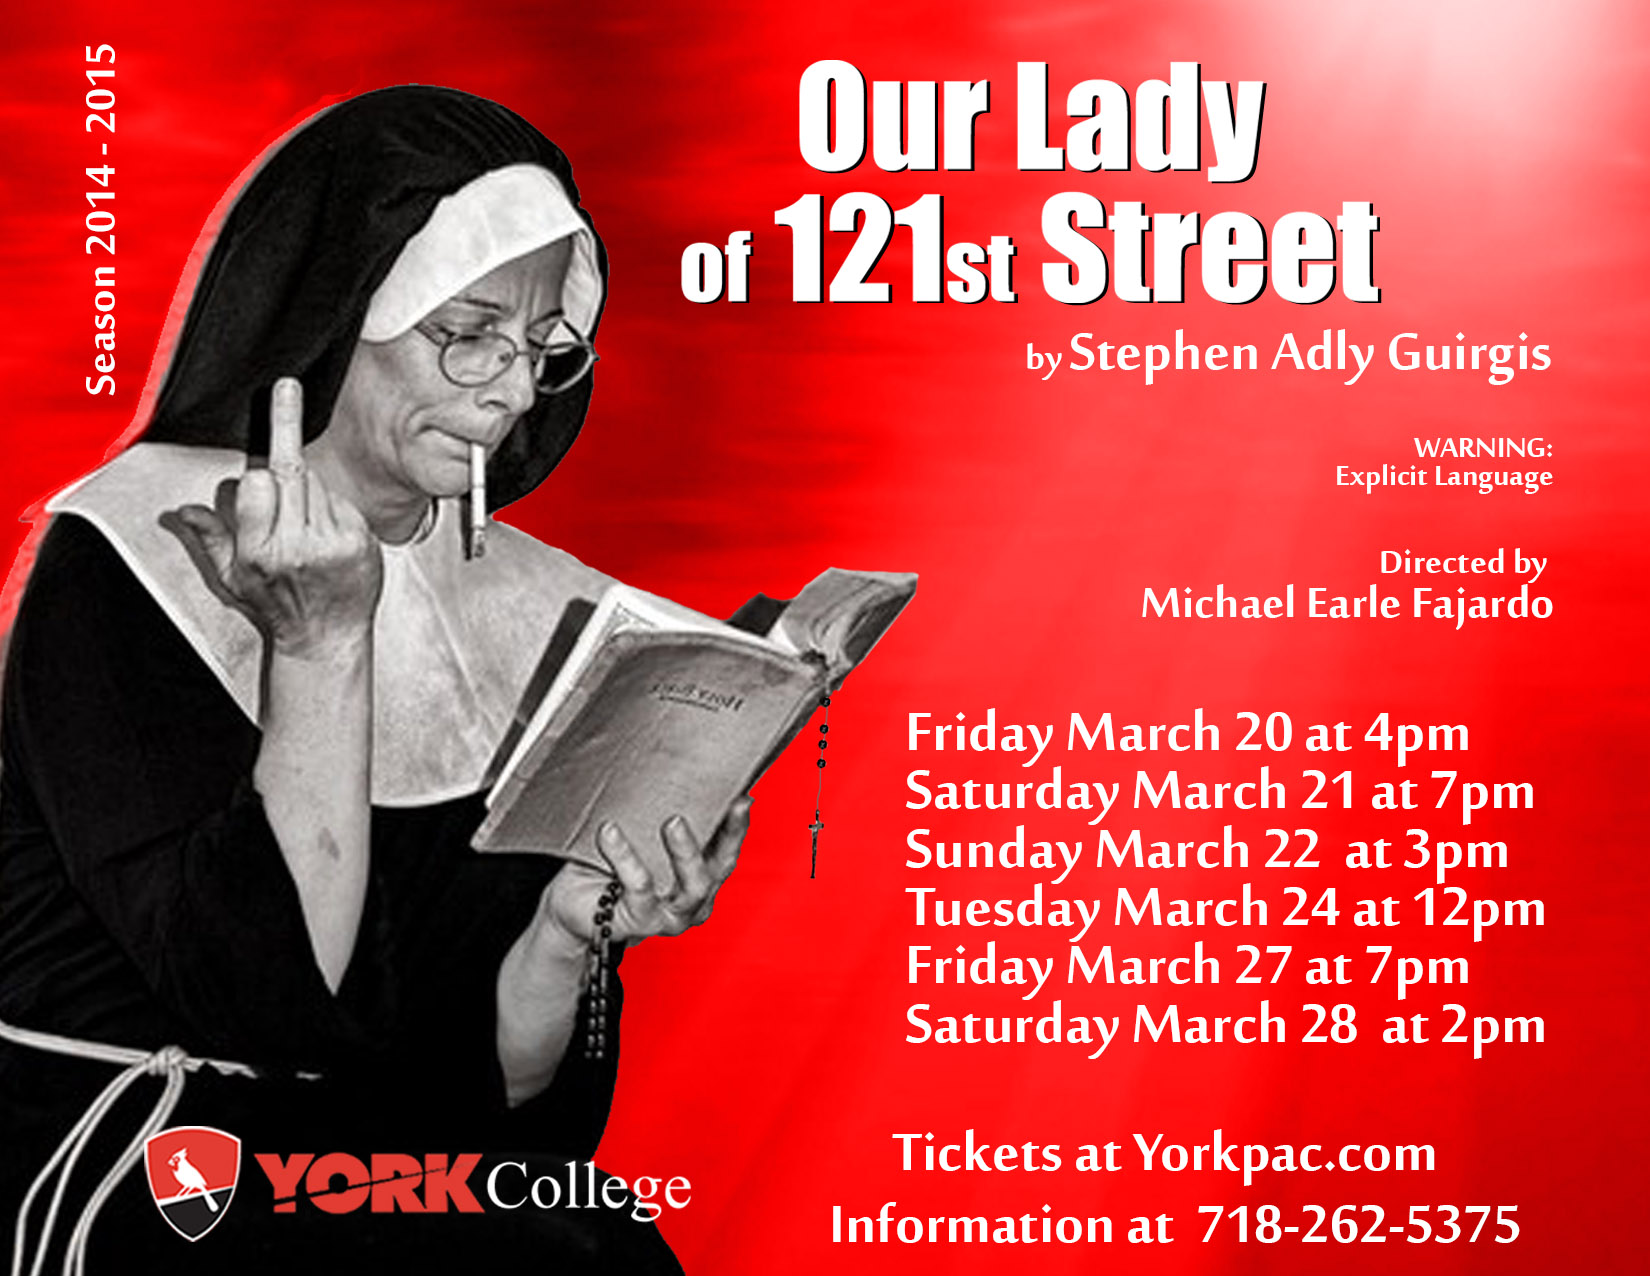 our lady of 121st street Our lady of 121st street please read the information below to purchase tickets d about the show: the ortiz funeral room is in big trouble: the body of beloved community activist and nun sister rose has been stolen from the viewing room, and waiting for her proper.